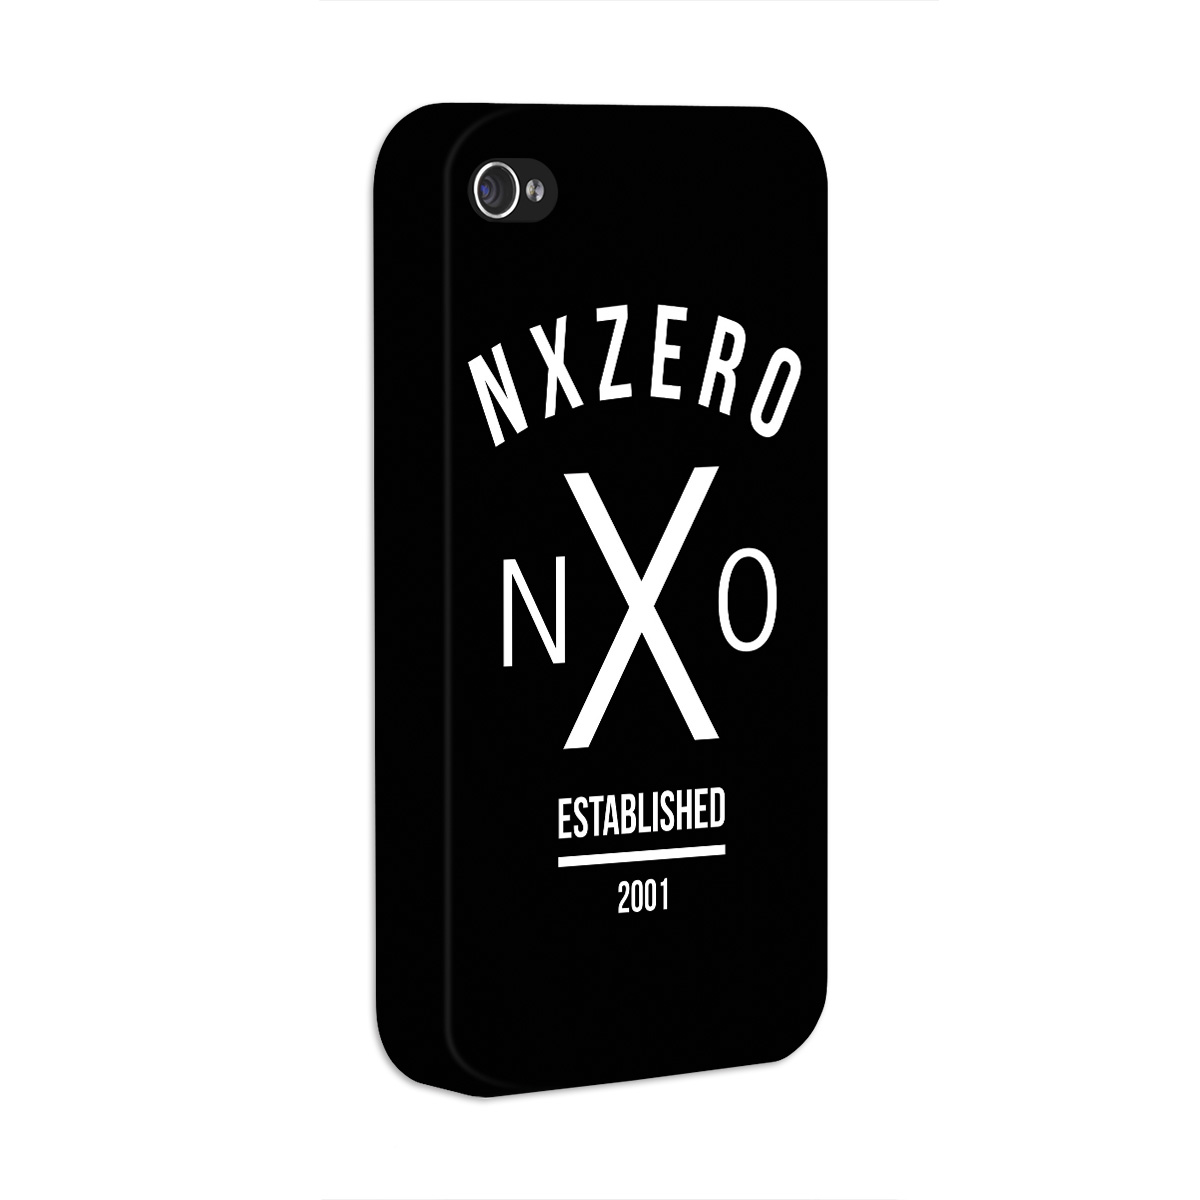 Capa de iPhone 4/4S NXZero NX0